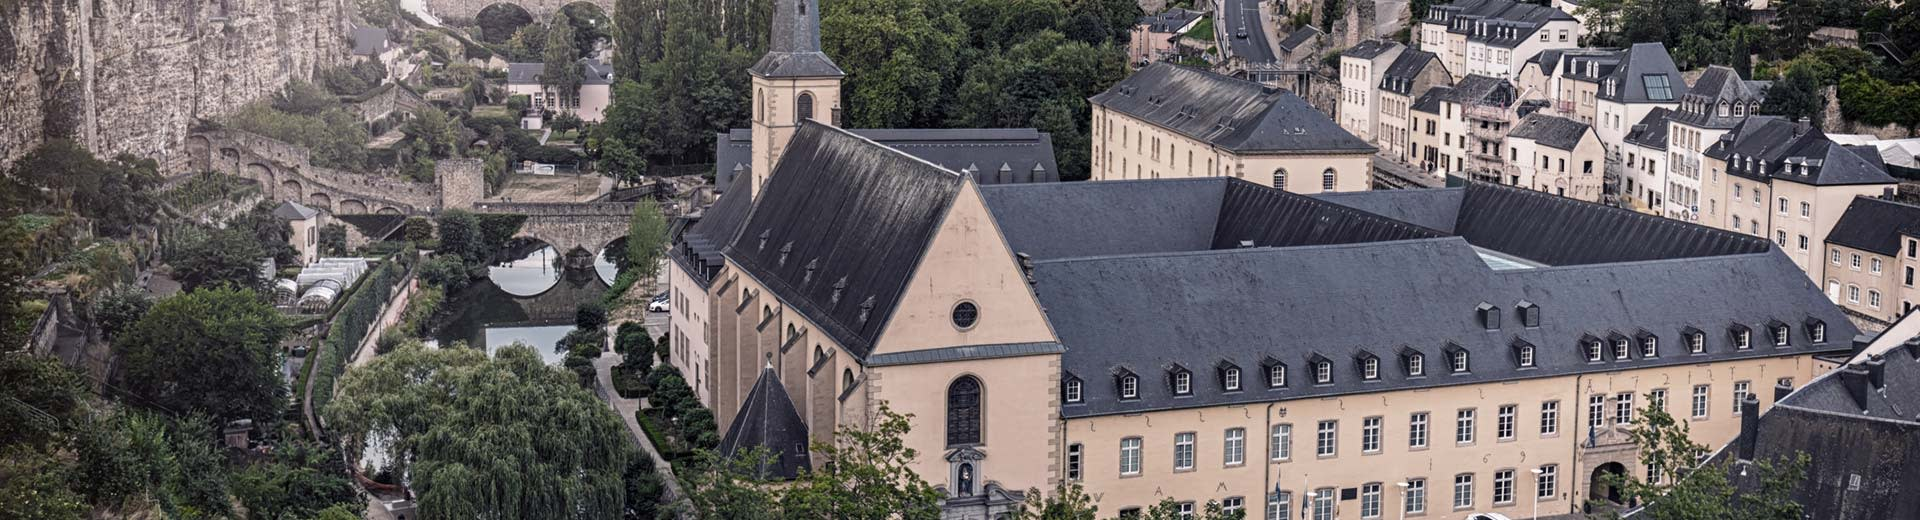 The historic town of Luxembourg, with winding streets and cobbled bridges